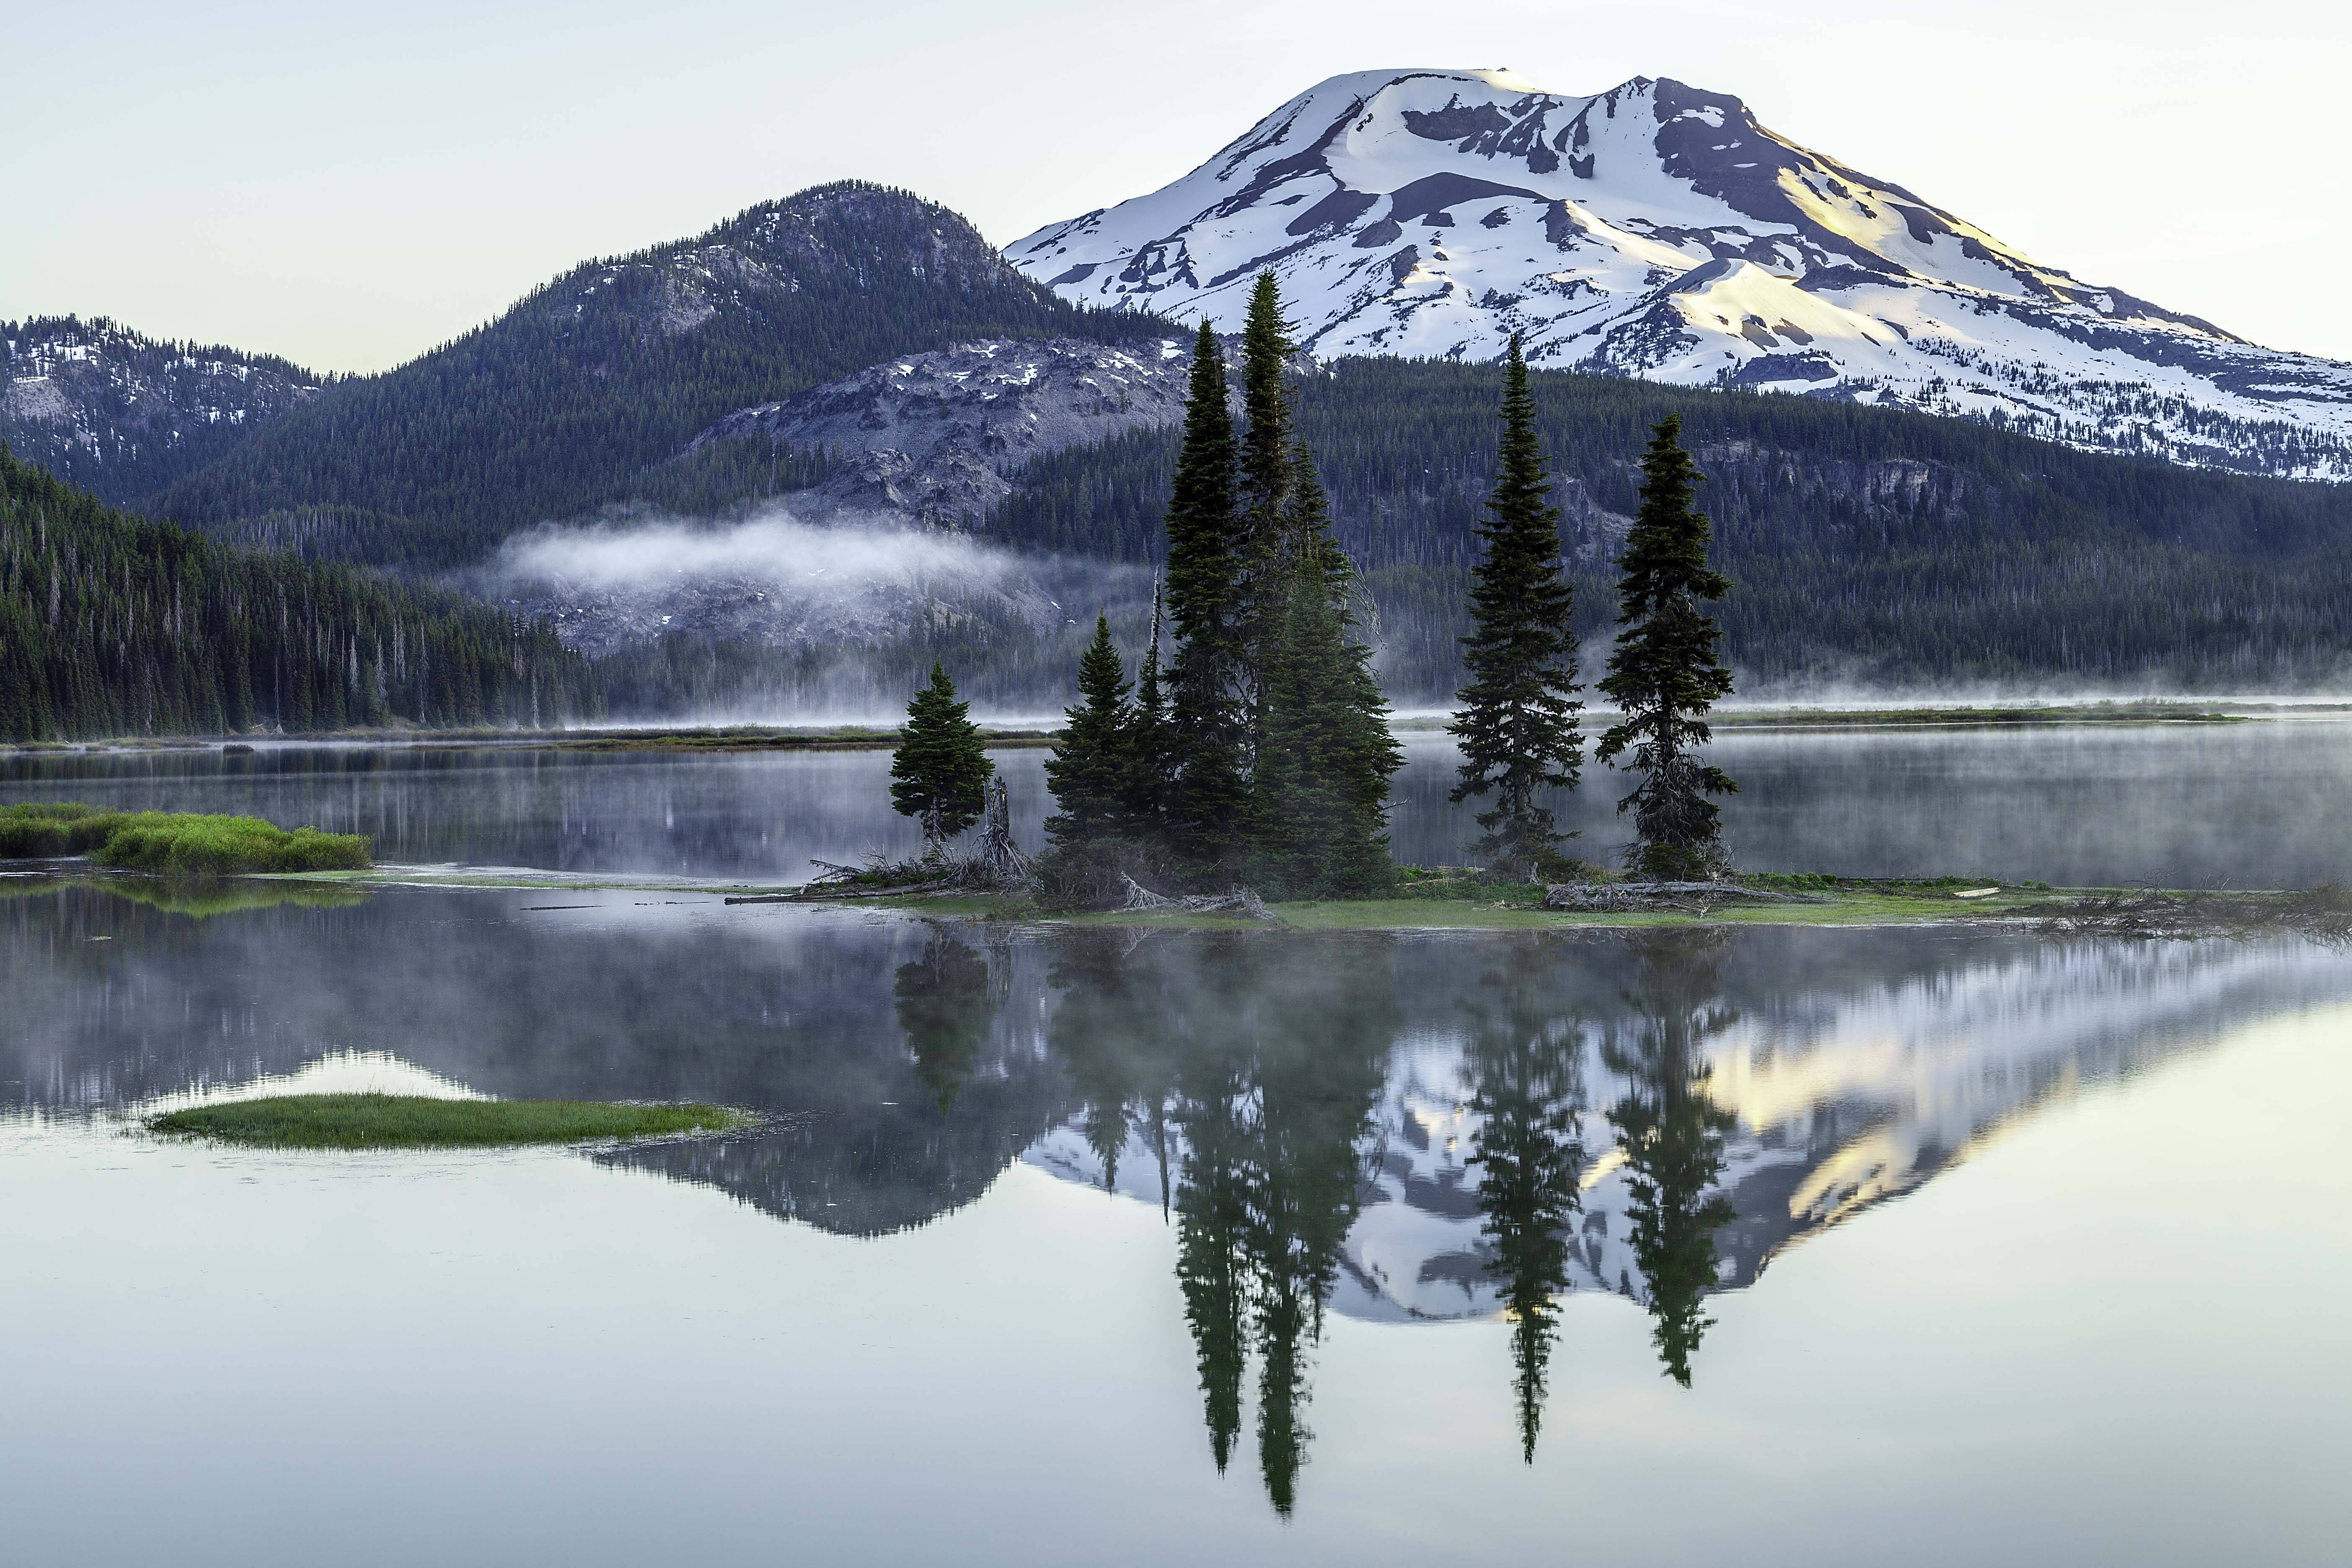 Sparks Lake, Deschutes County, Oregon